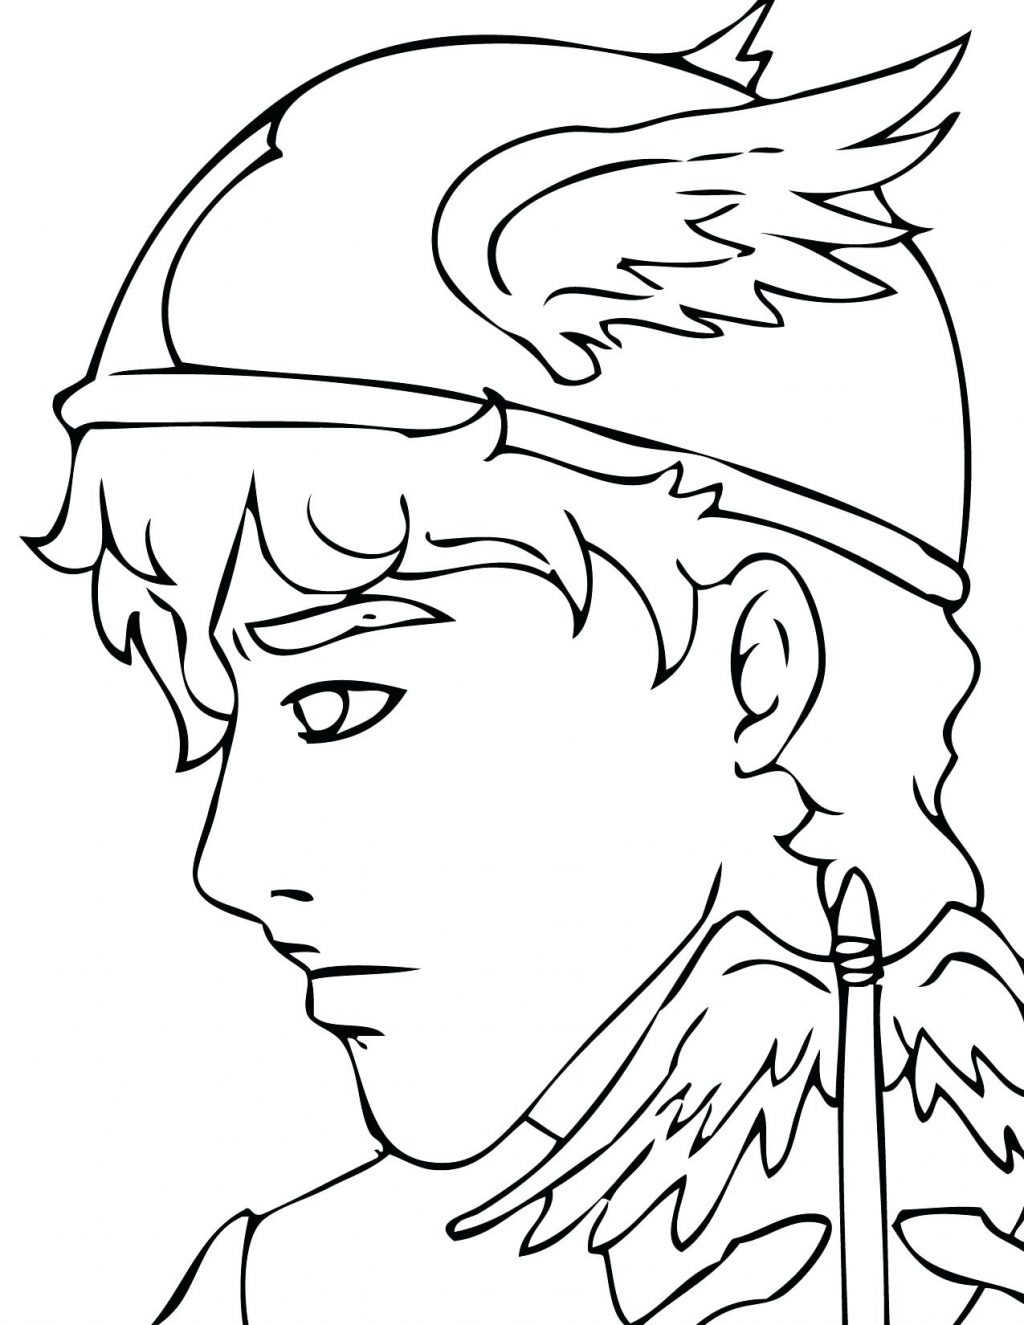 Apollo Coloring Page At Getcolorings